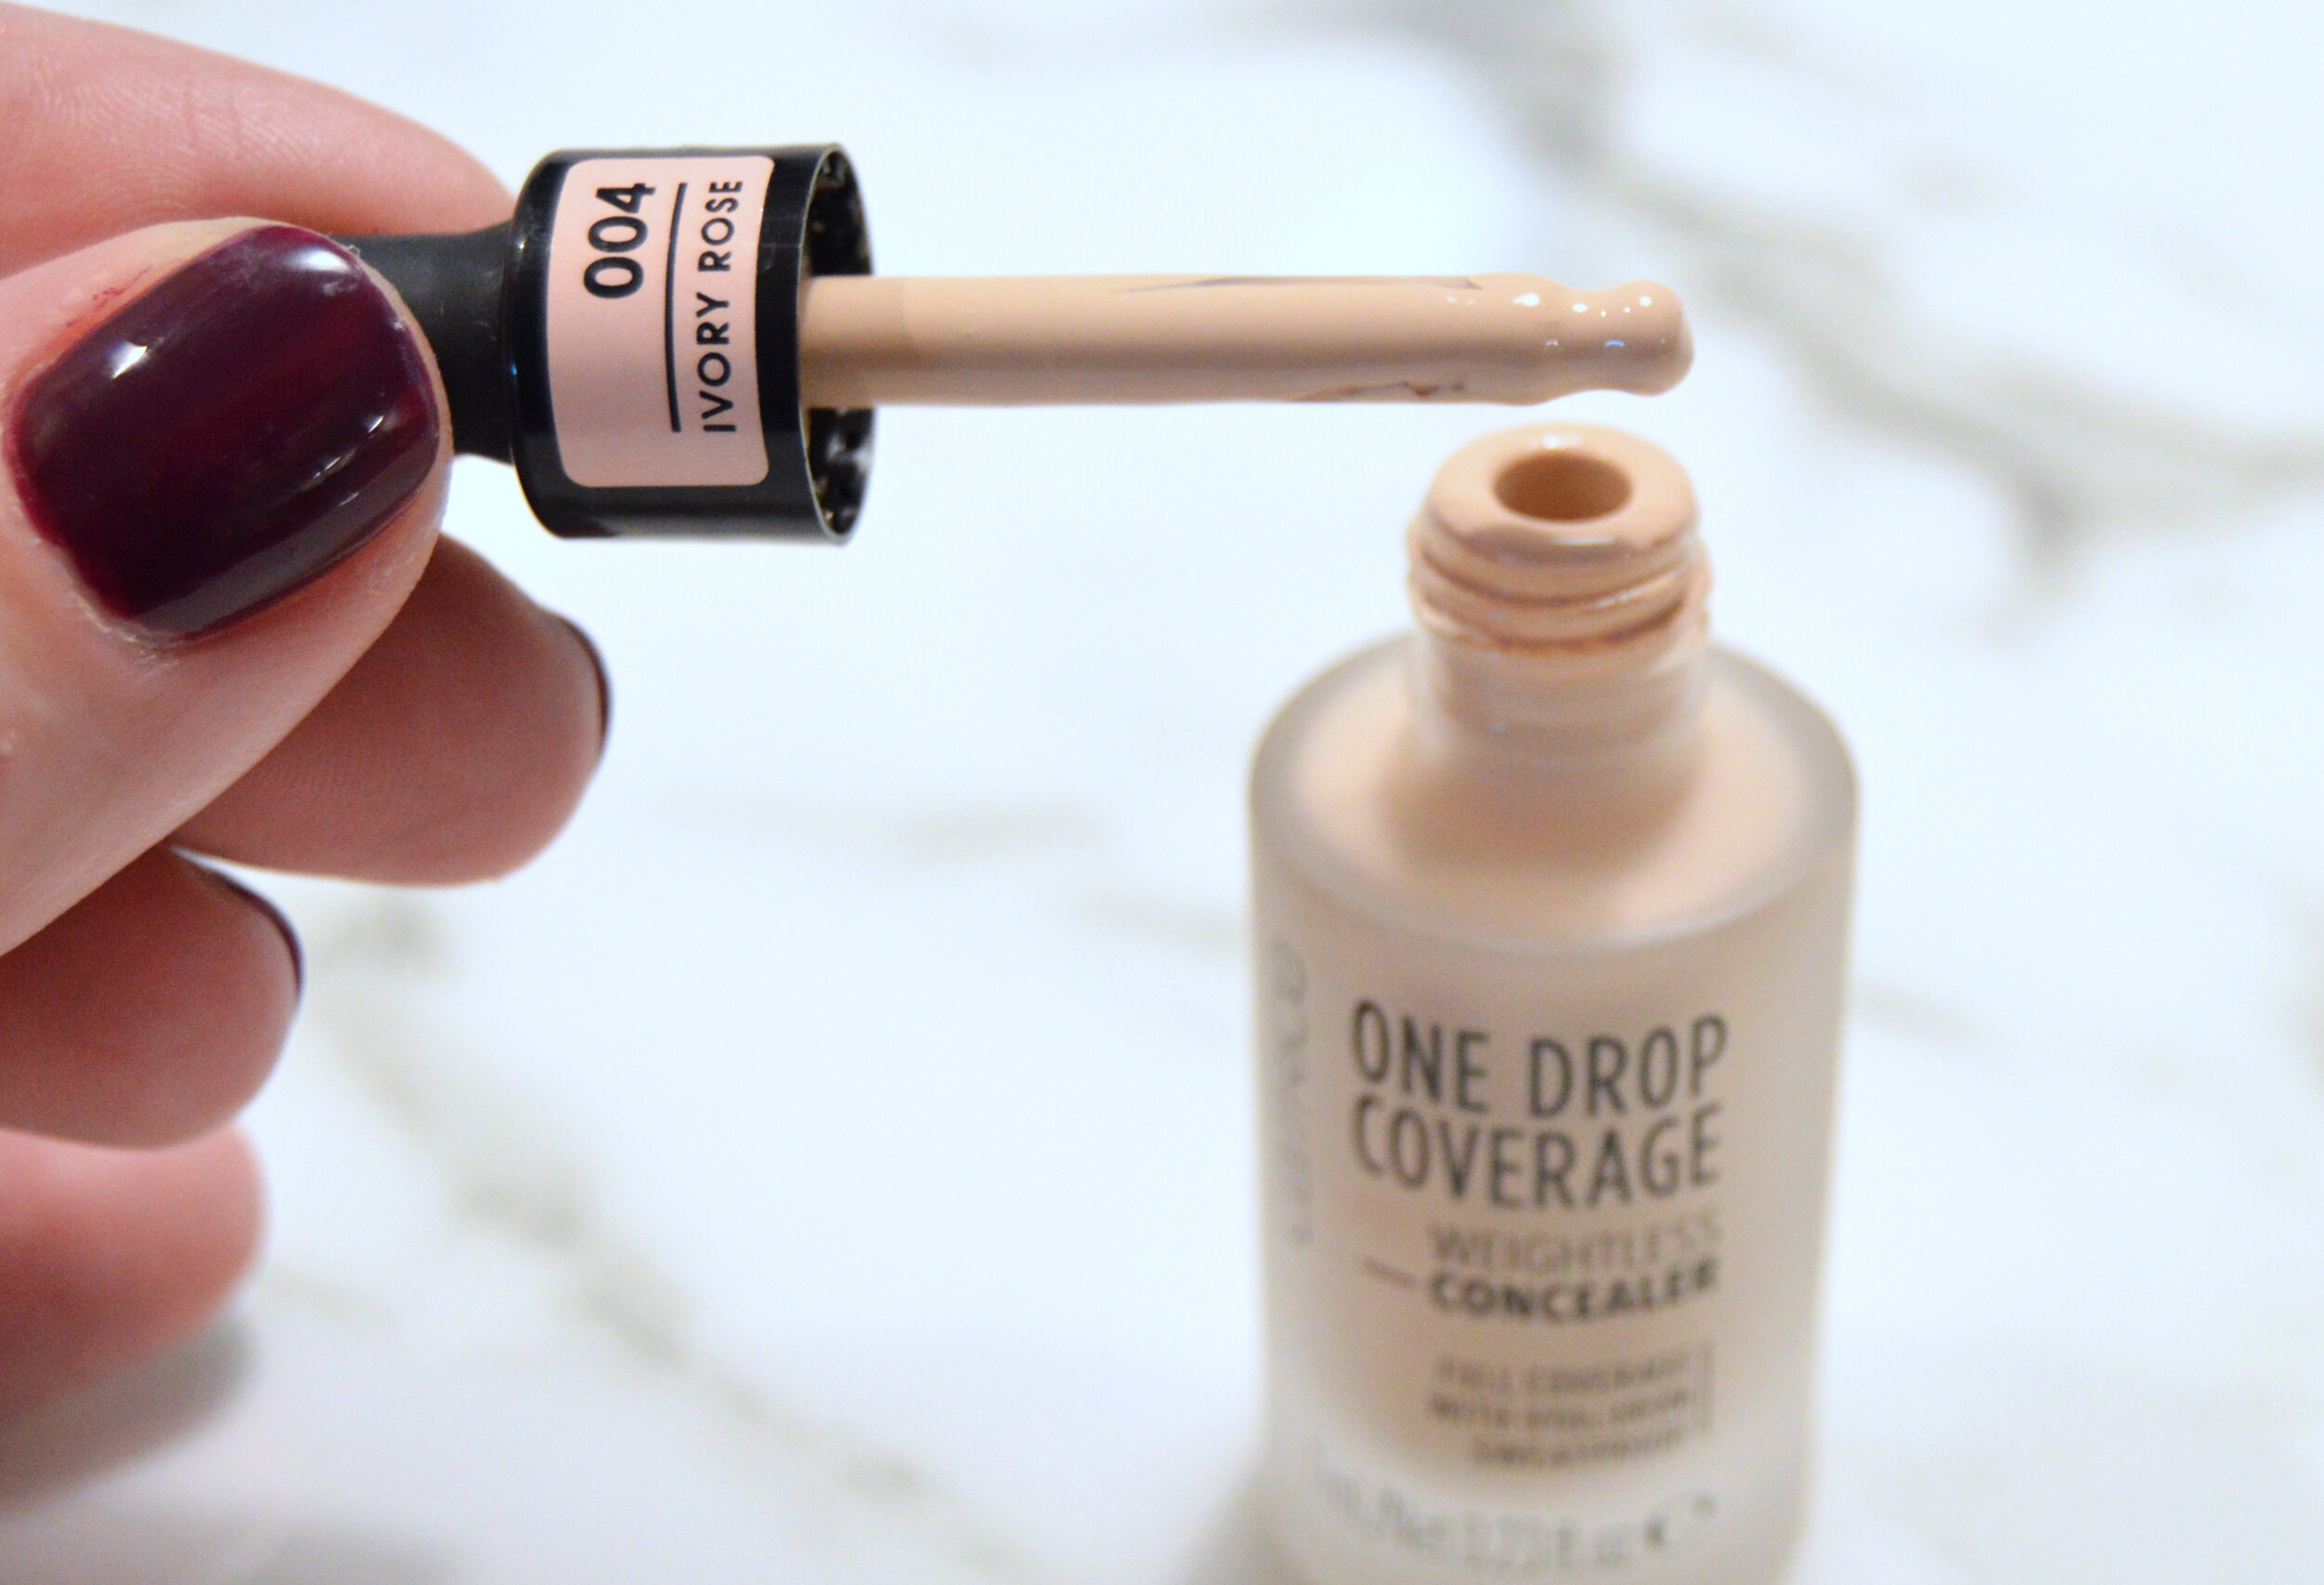 Finally, a concealer that makes you feel like you have ENORMOUS hands.